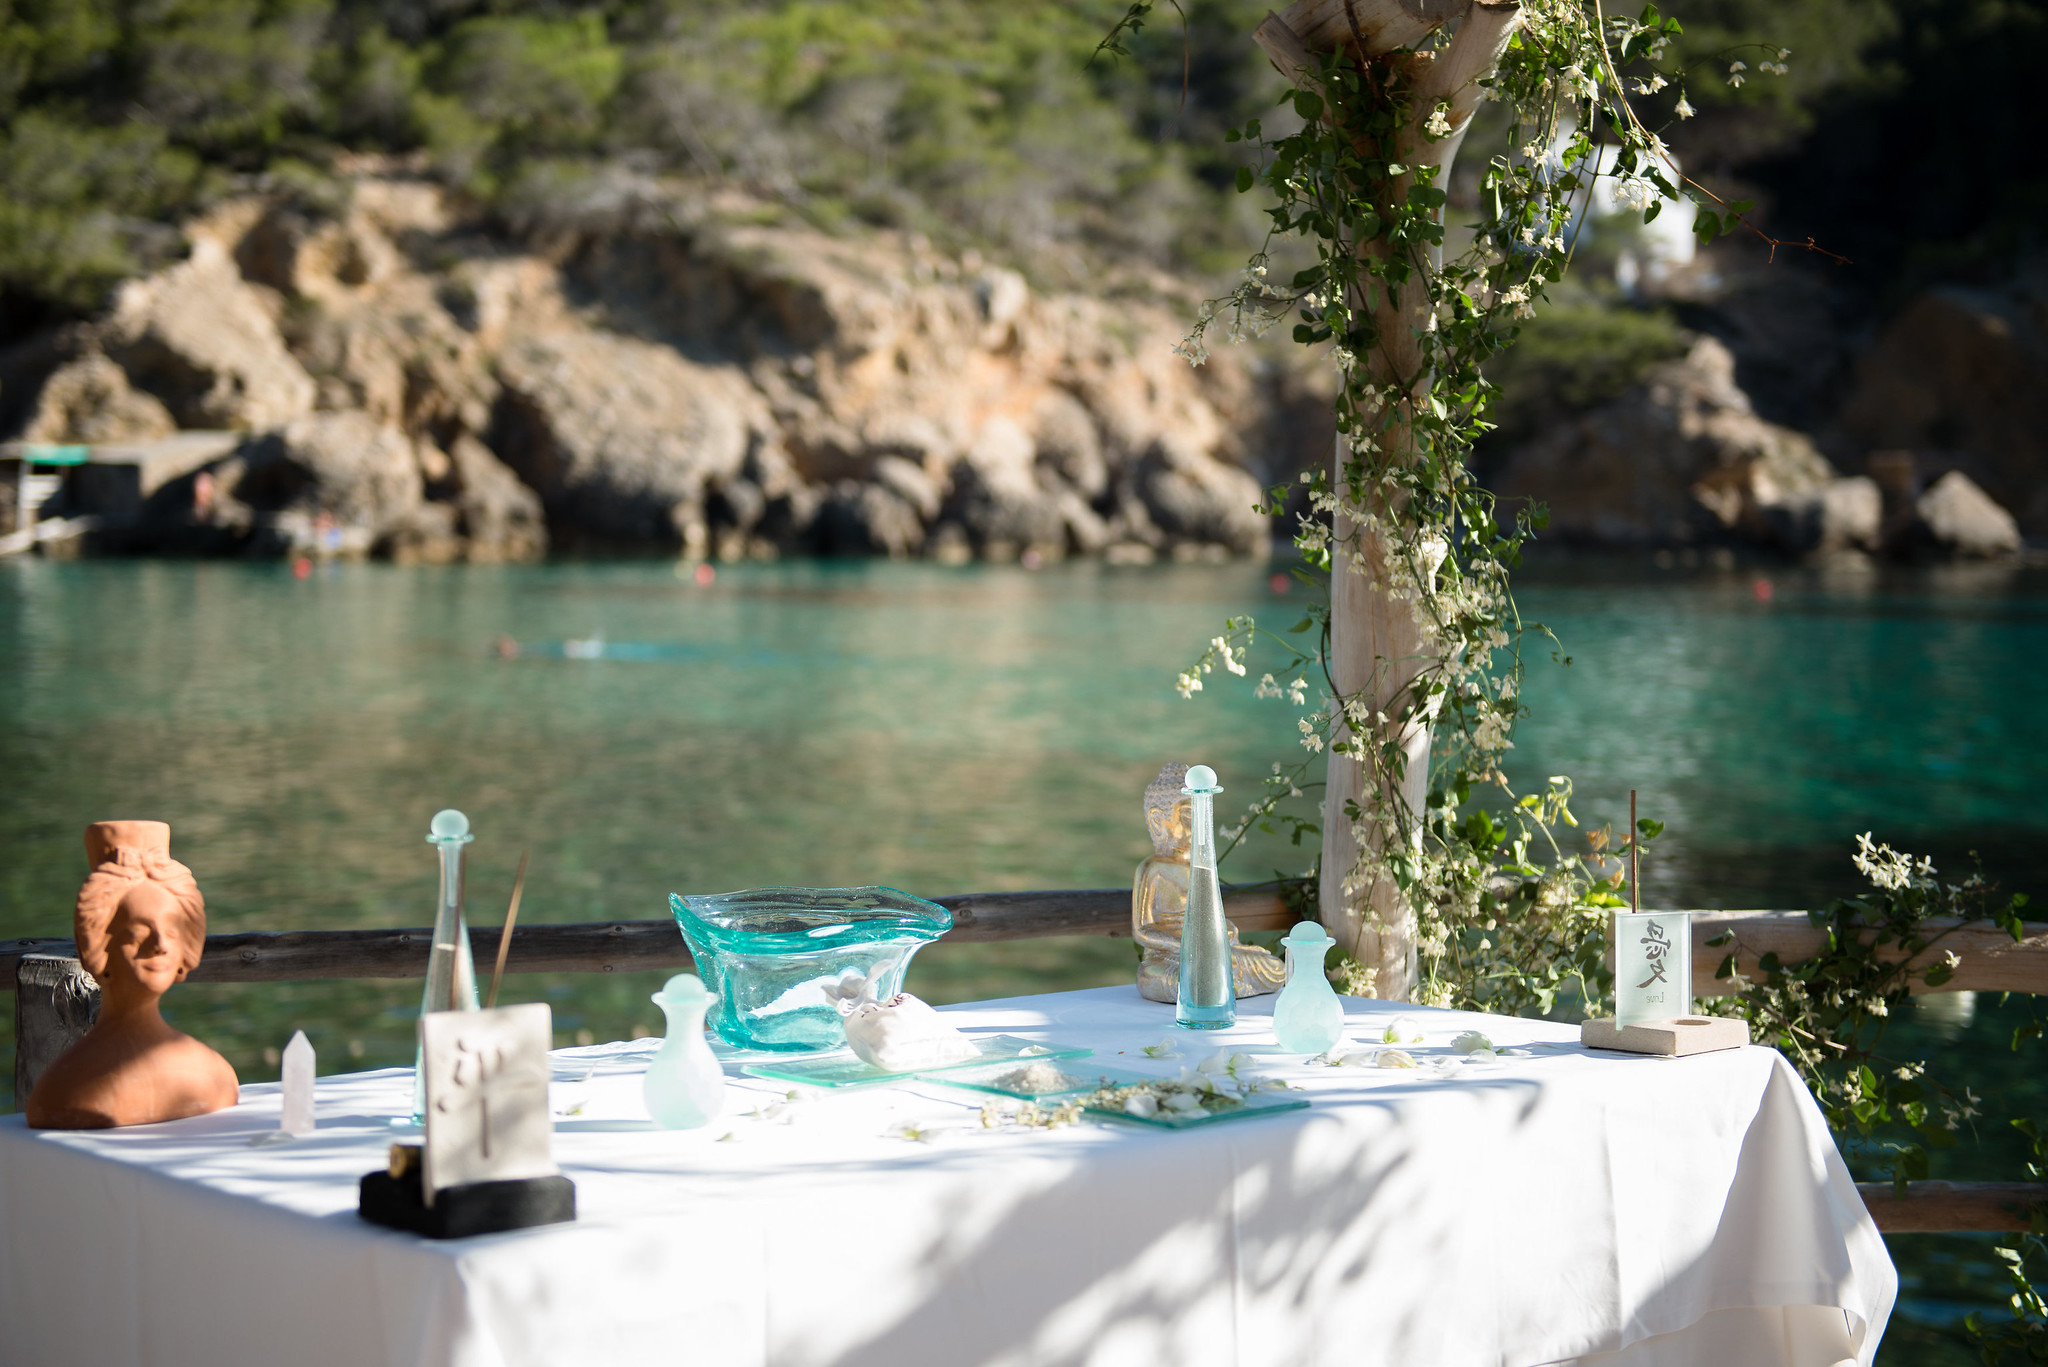 https://www.white-ibiza.com/wp-content/uploads/2020/04/elements-ibiza-wedding-venue-2020-10.jpg